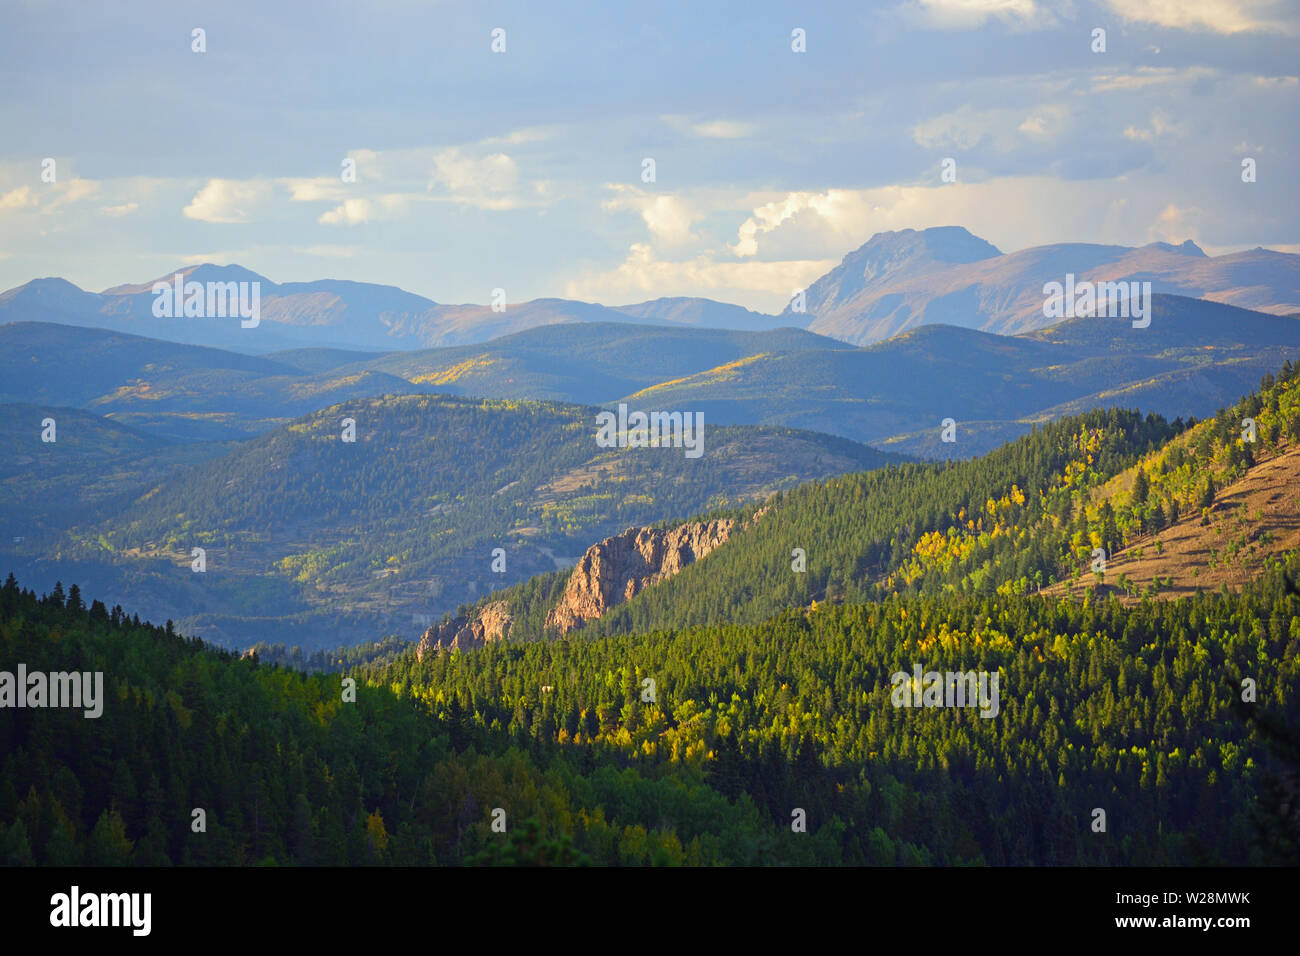 Mt. Evans Wilderness Area in Colorado with Colorful Fall Leaves - Stock Image